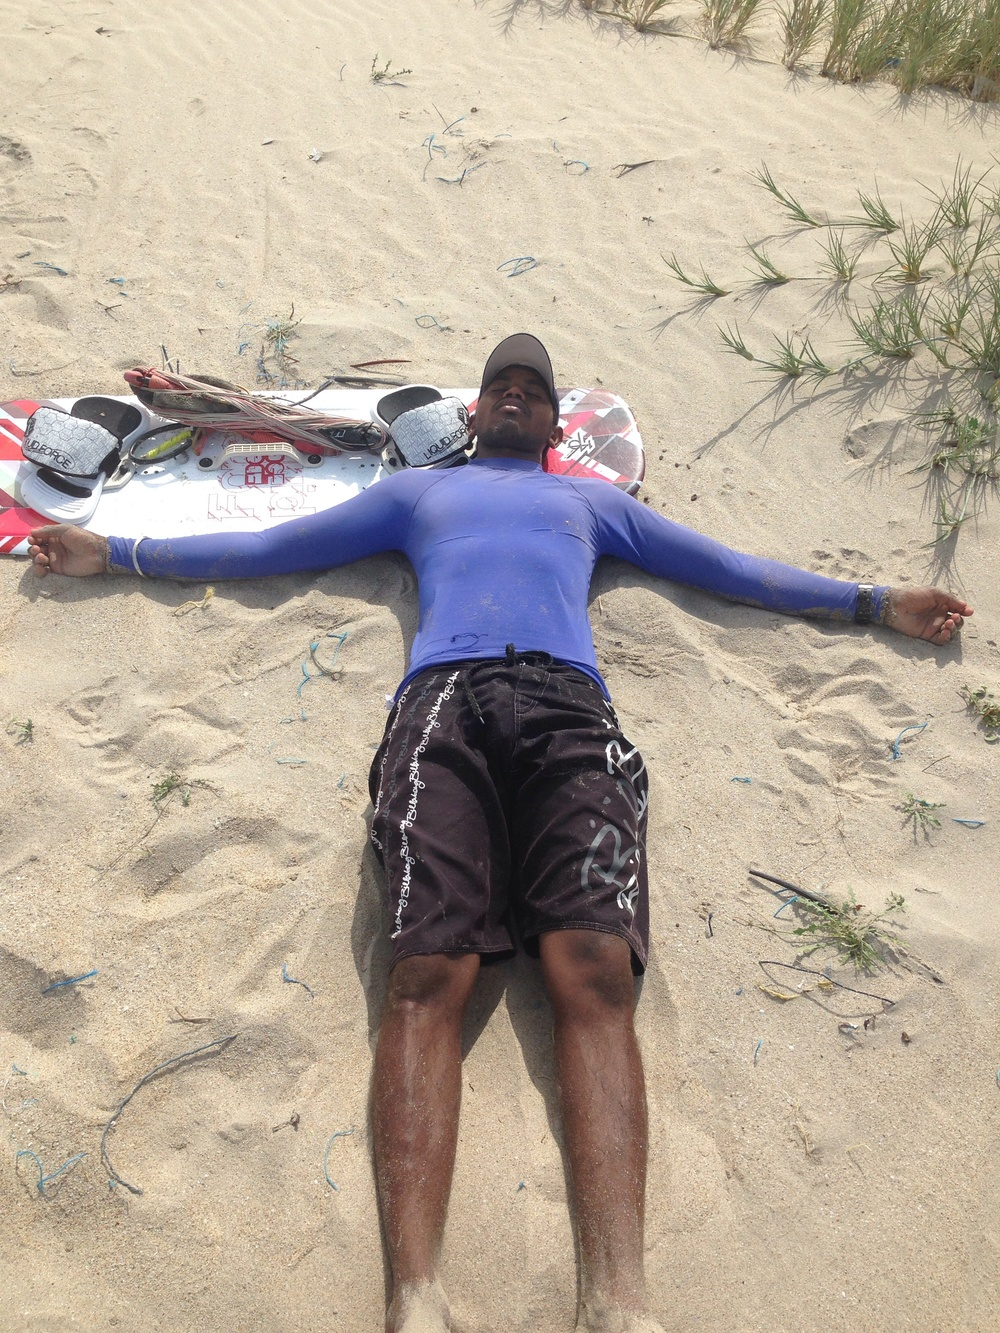 Govinda takes an afternoon Kite nap, kitesurfing